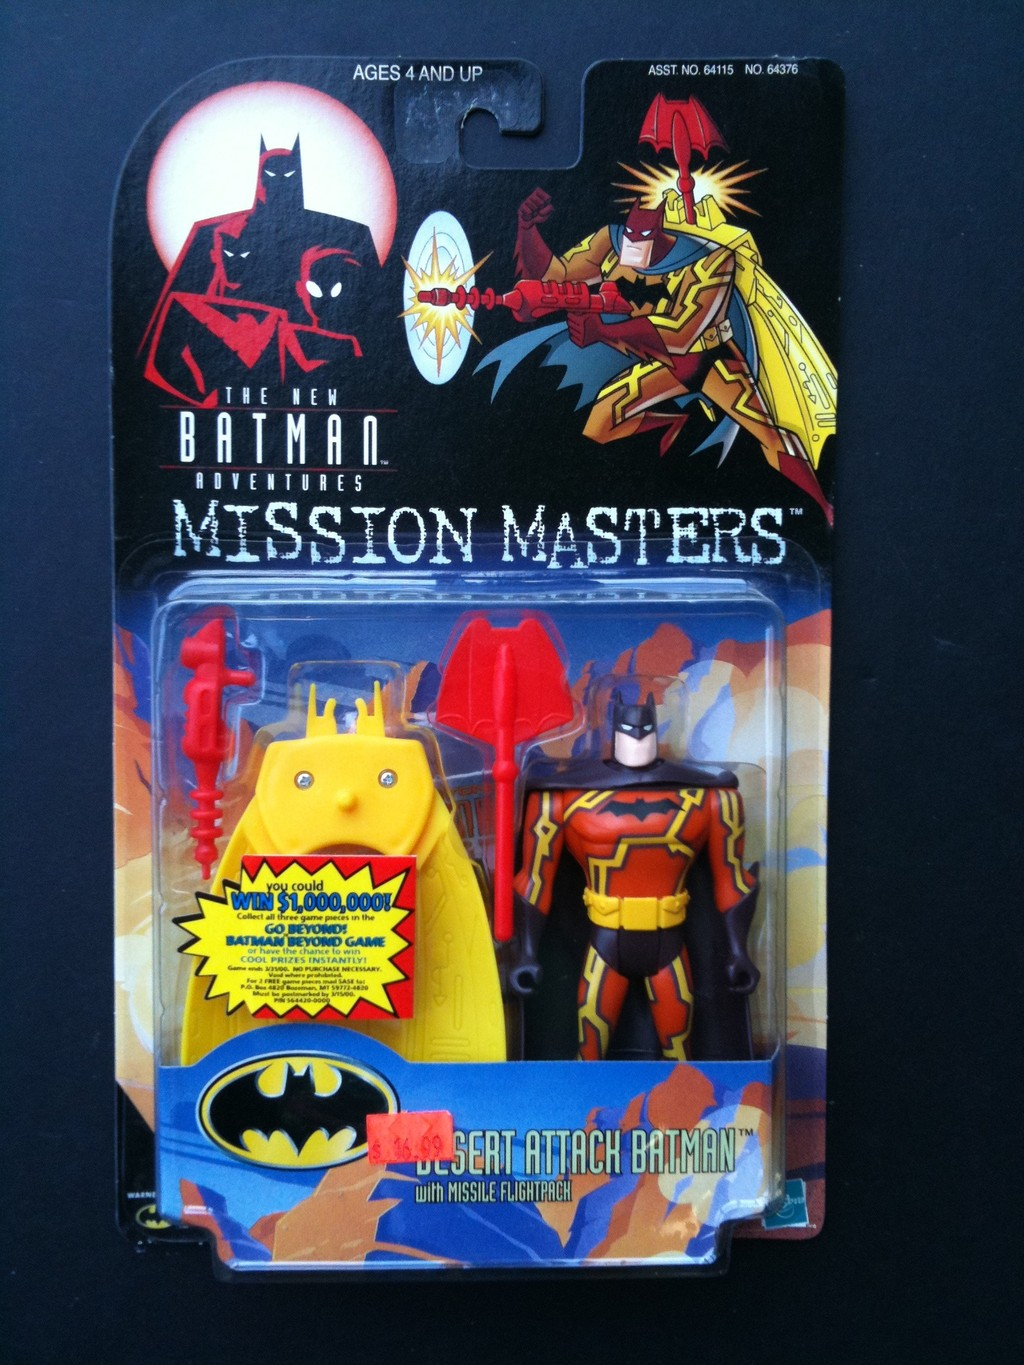 Desert Attack Batman with Missile Flightpack